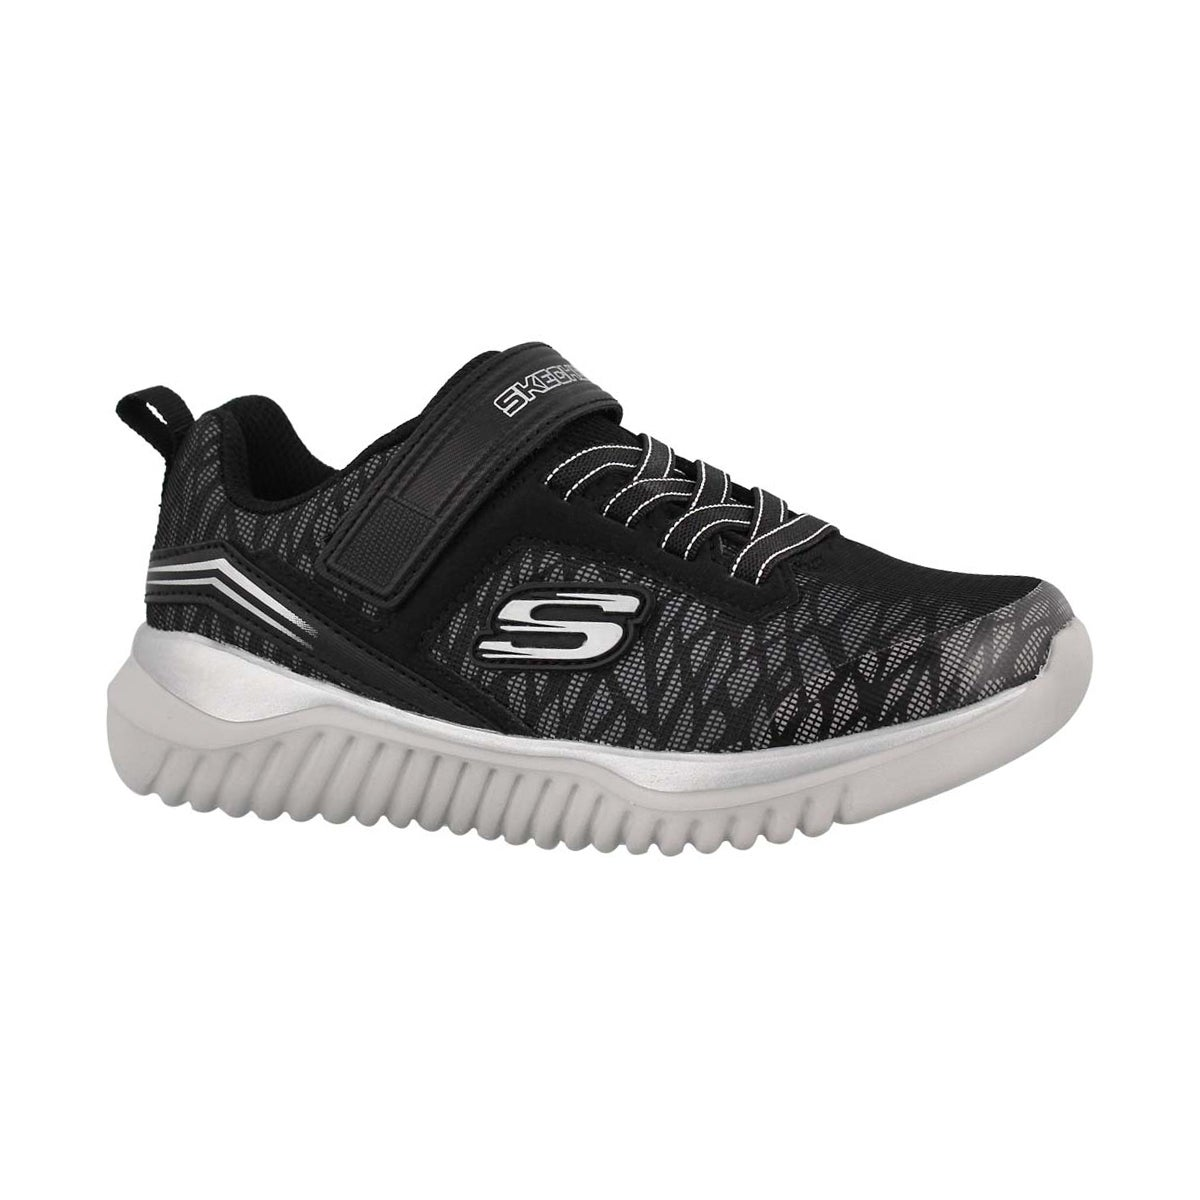 Boys' TURBOSHIFT black/silver sneakers